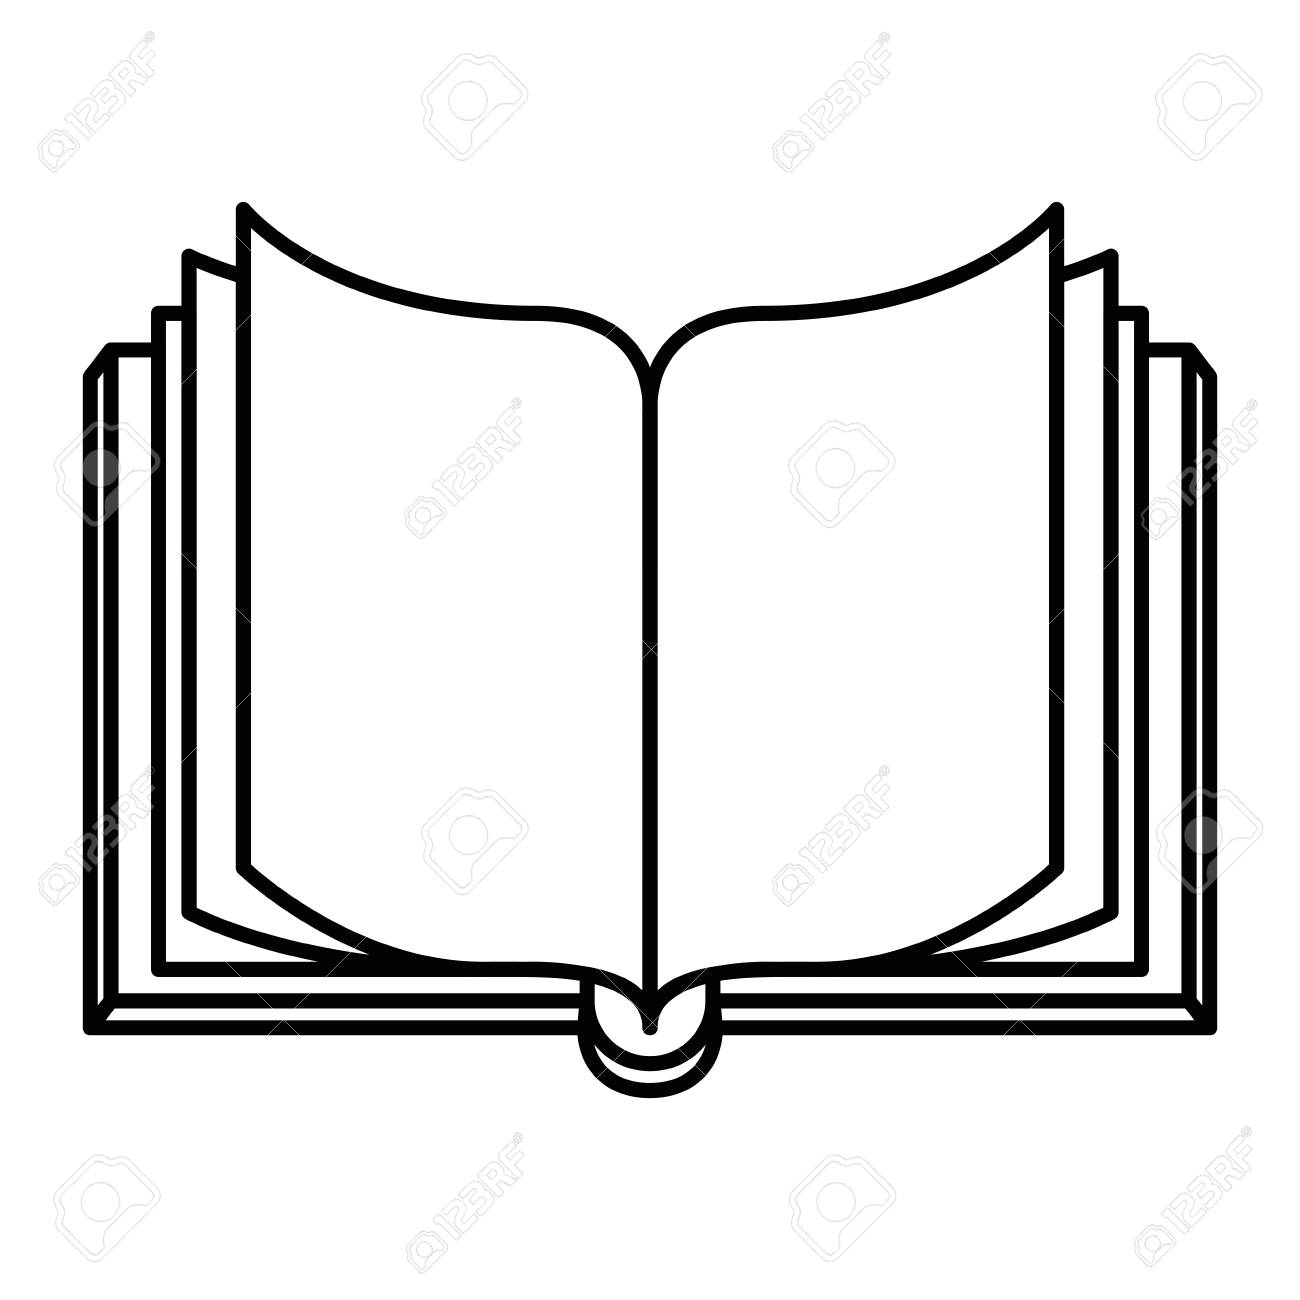 sketch silhouette image front view open book vector illustration rh 123rf com open book vector free open book vector free download